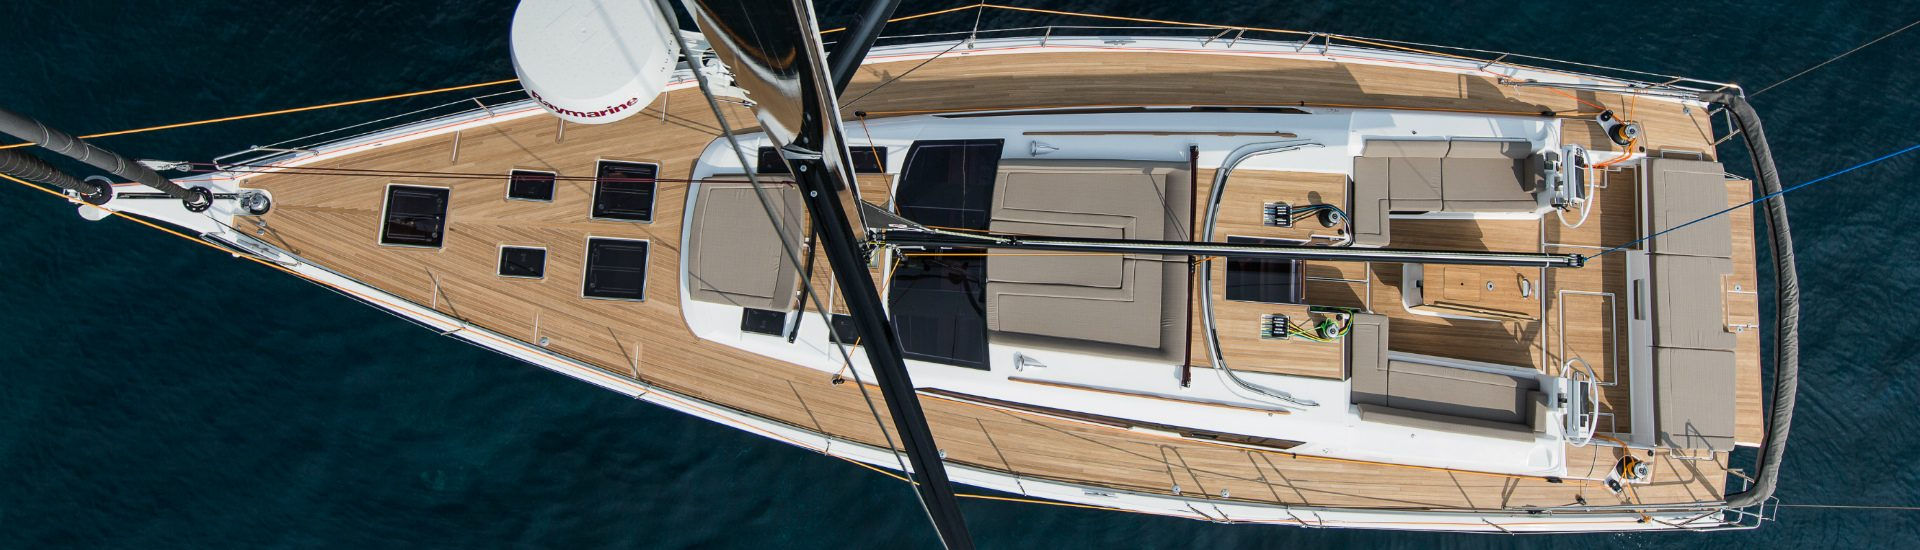 Dufour 56 – New Stock